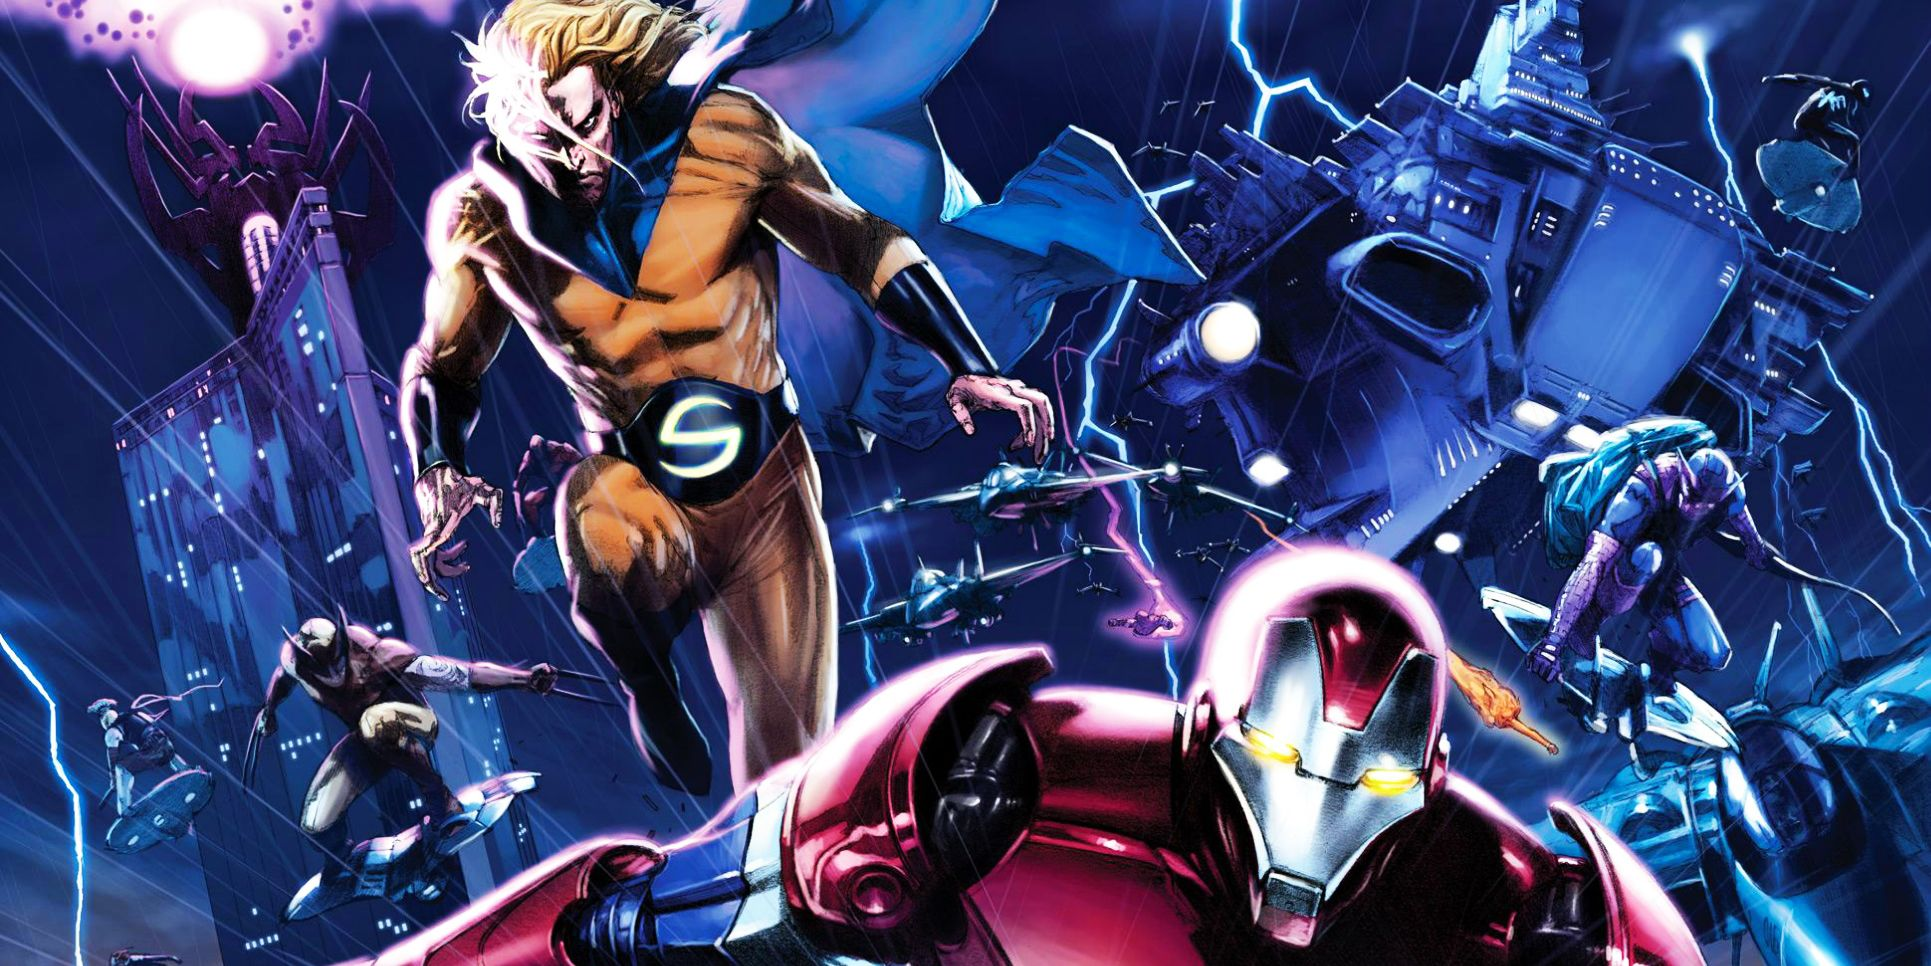 Dark Avengers: 8 Members We Can't Wait To See In The MCU (And 8 We Don't Want)